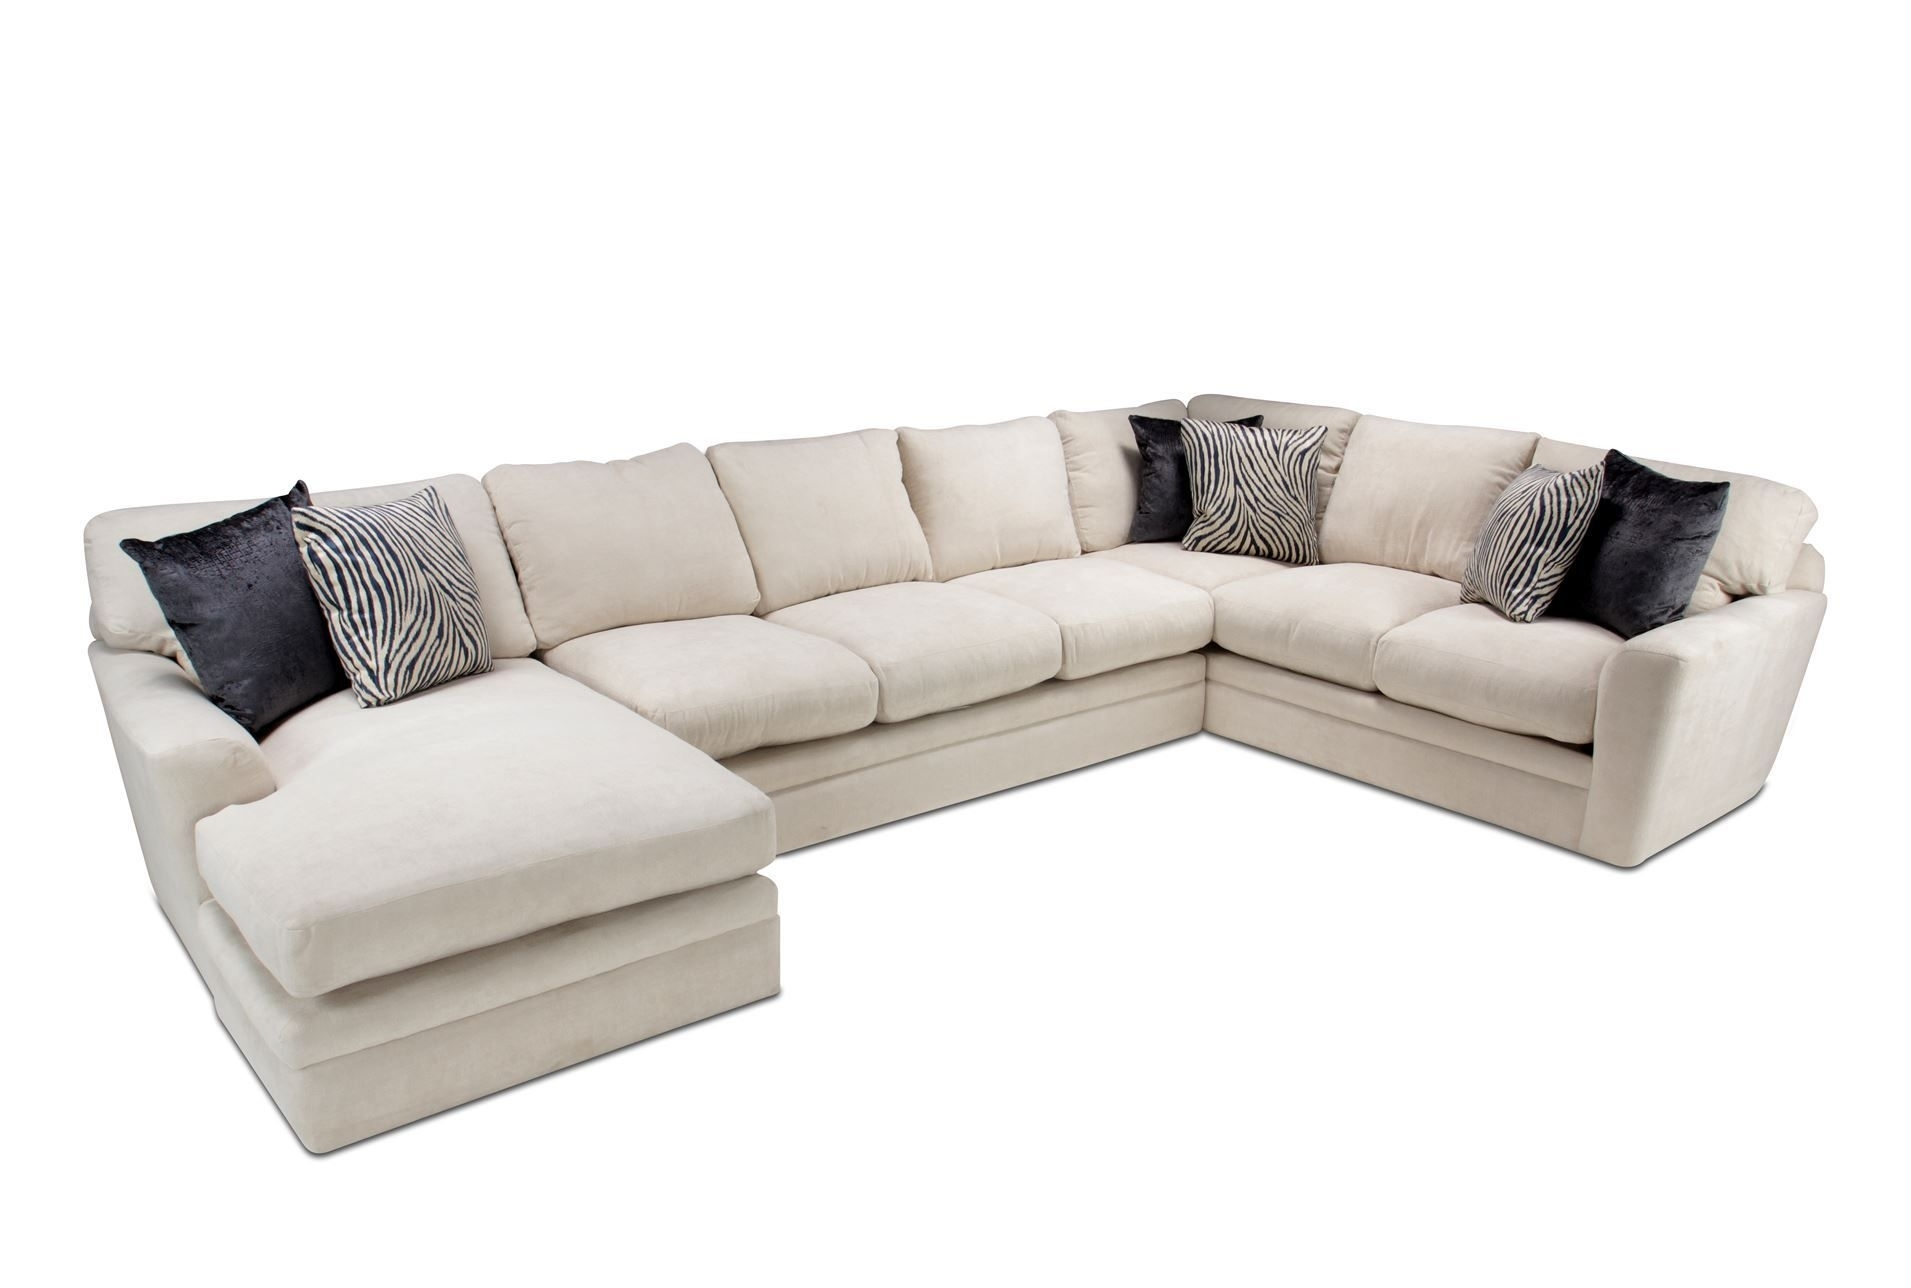 Glamour 3 Piece Sectional (View 2 of 25)